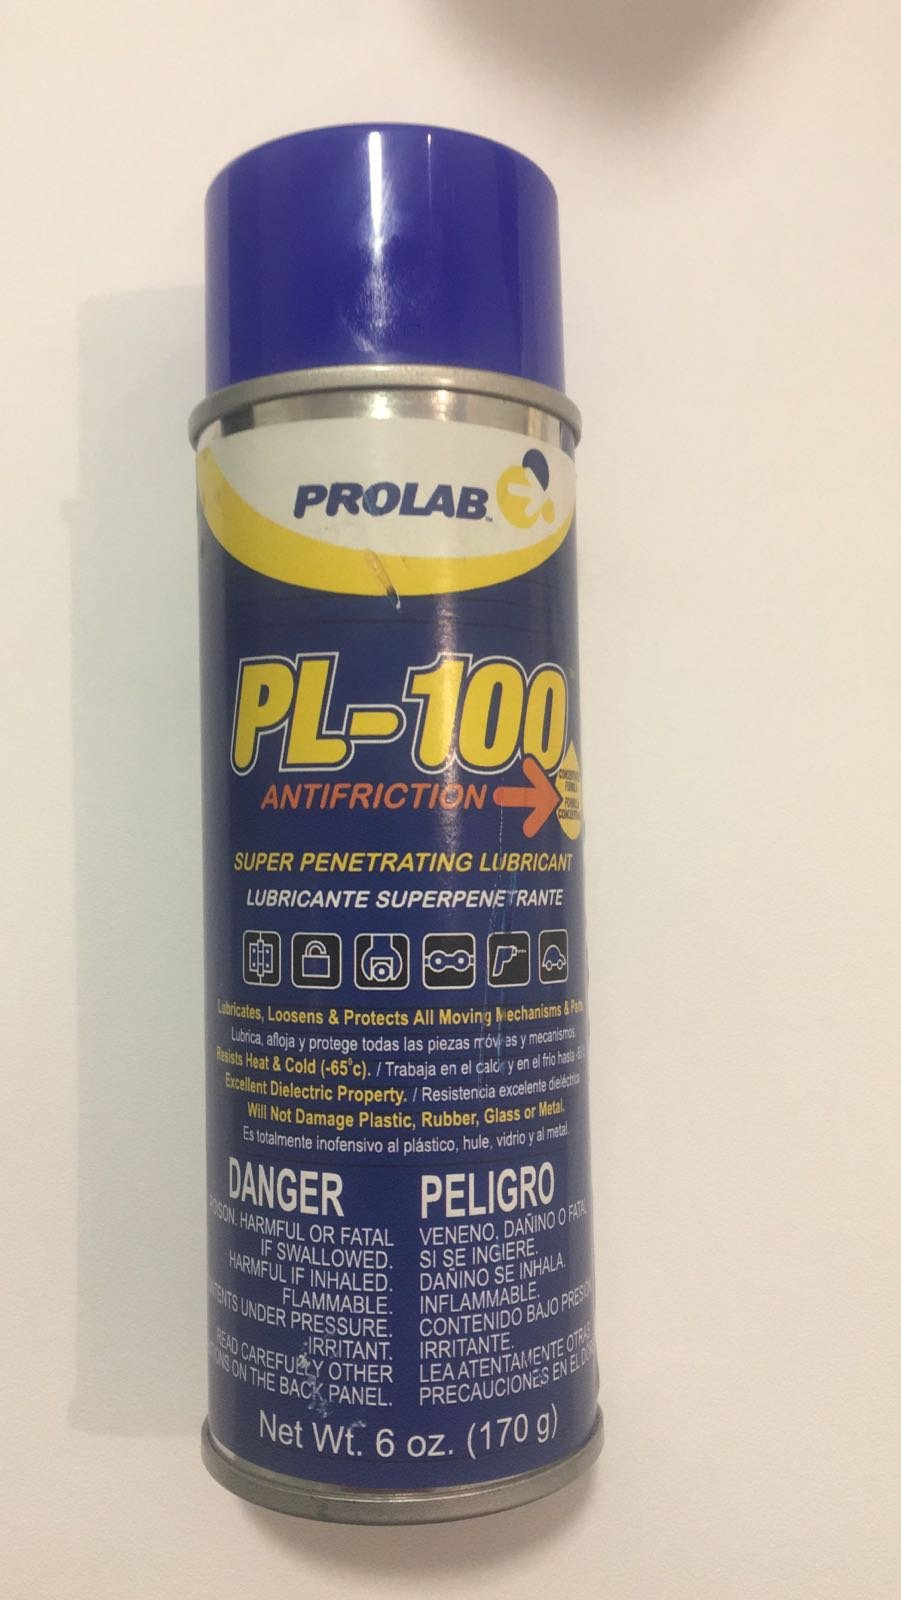 PL-100 Antifriction, Super Penetrating Lubricant